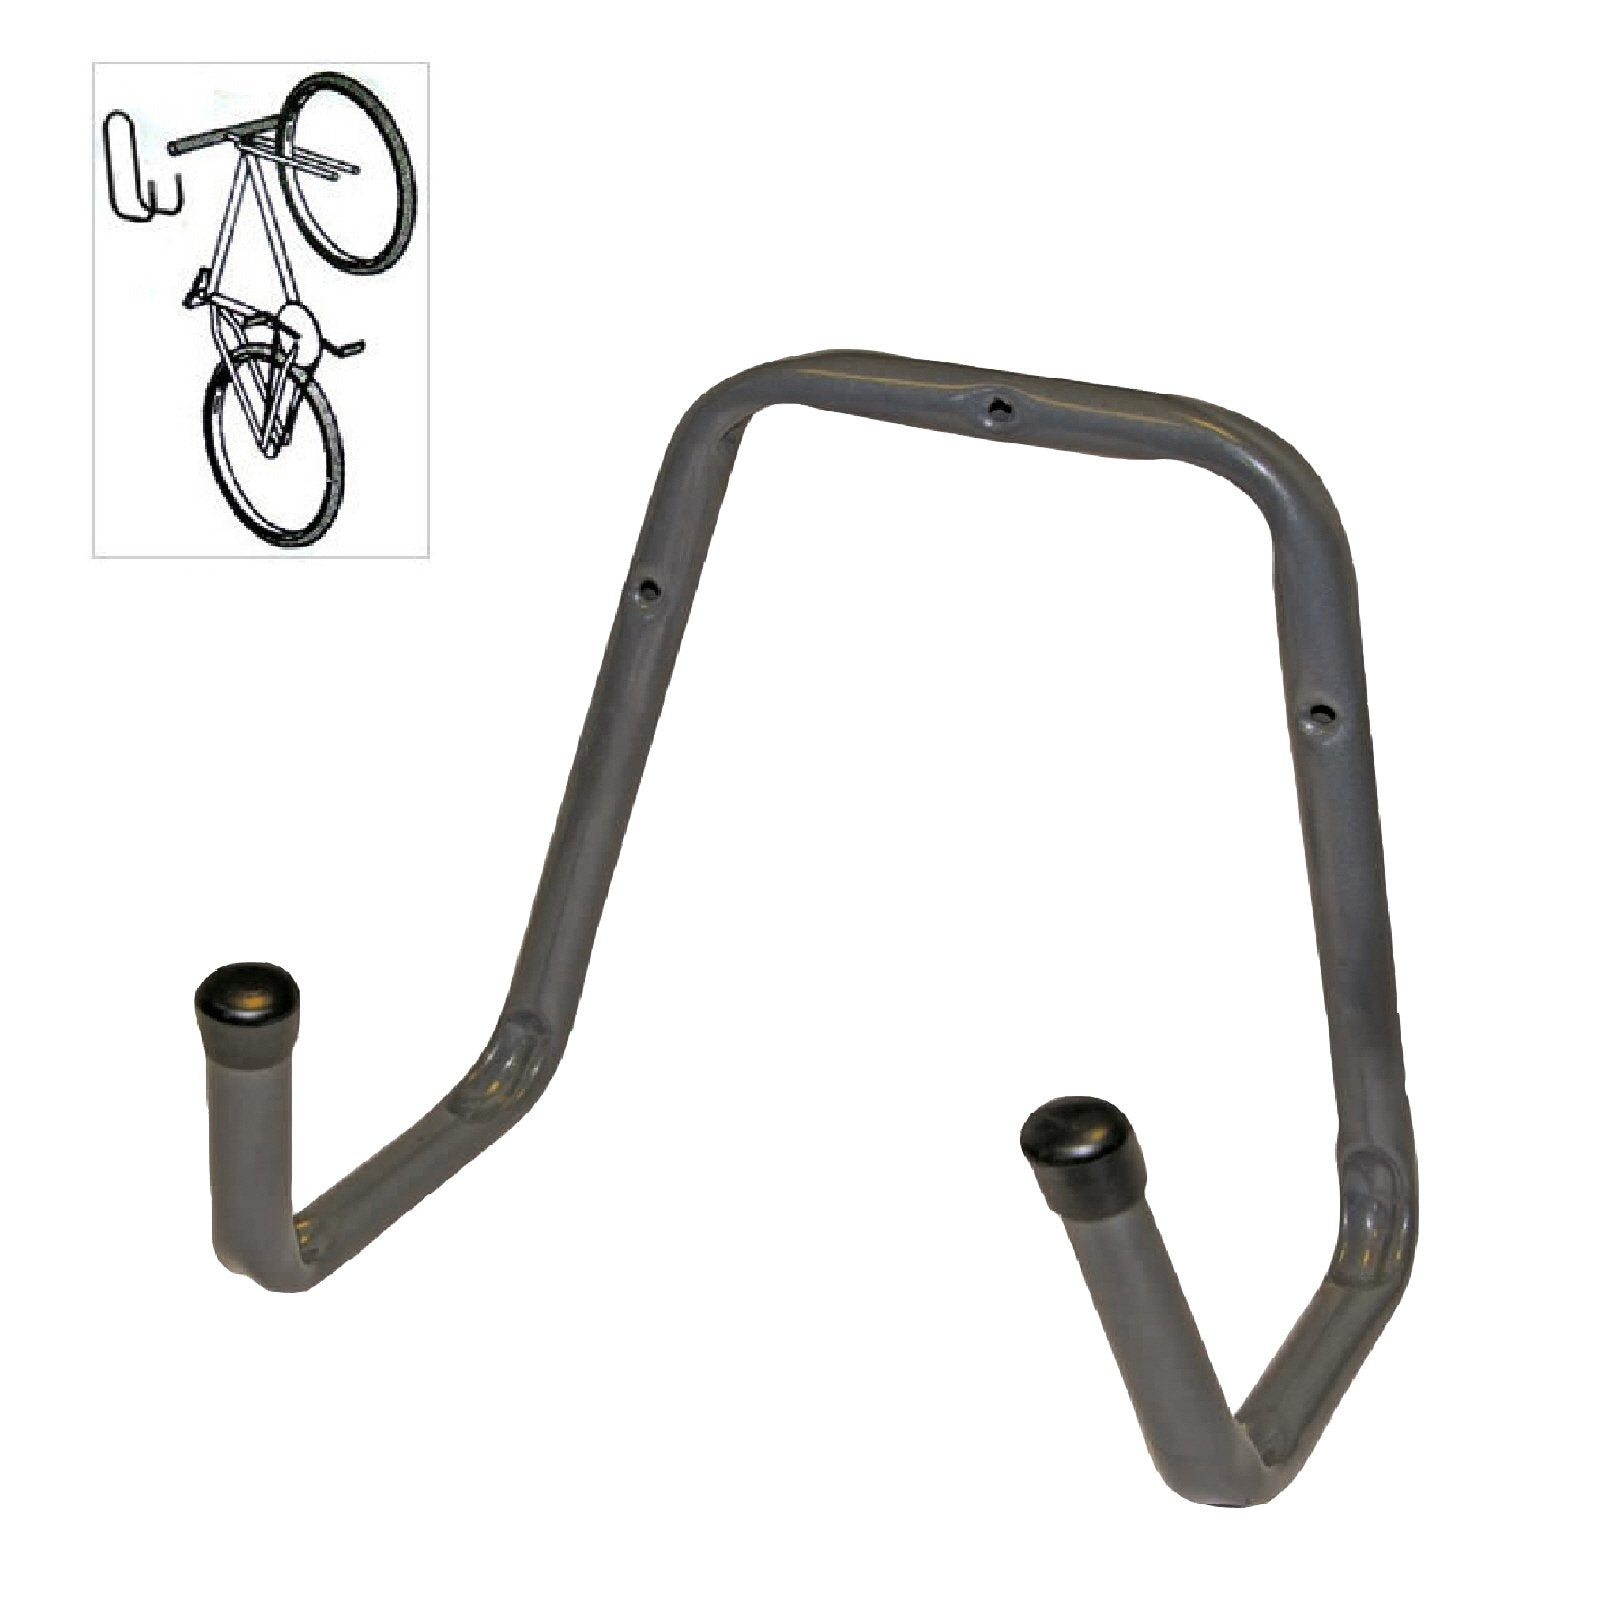 Bike Storage Hook Wall Mounted Utility Bracket<br><br>